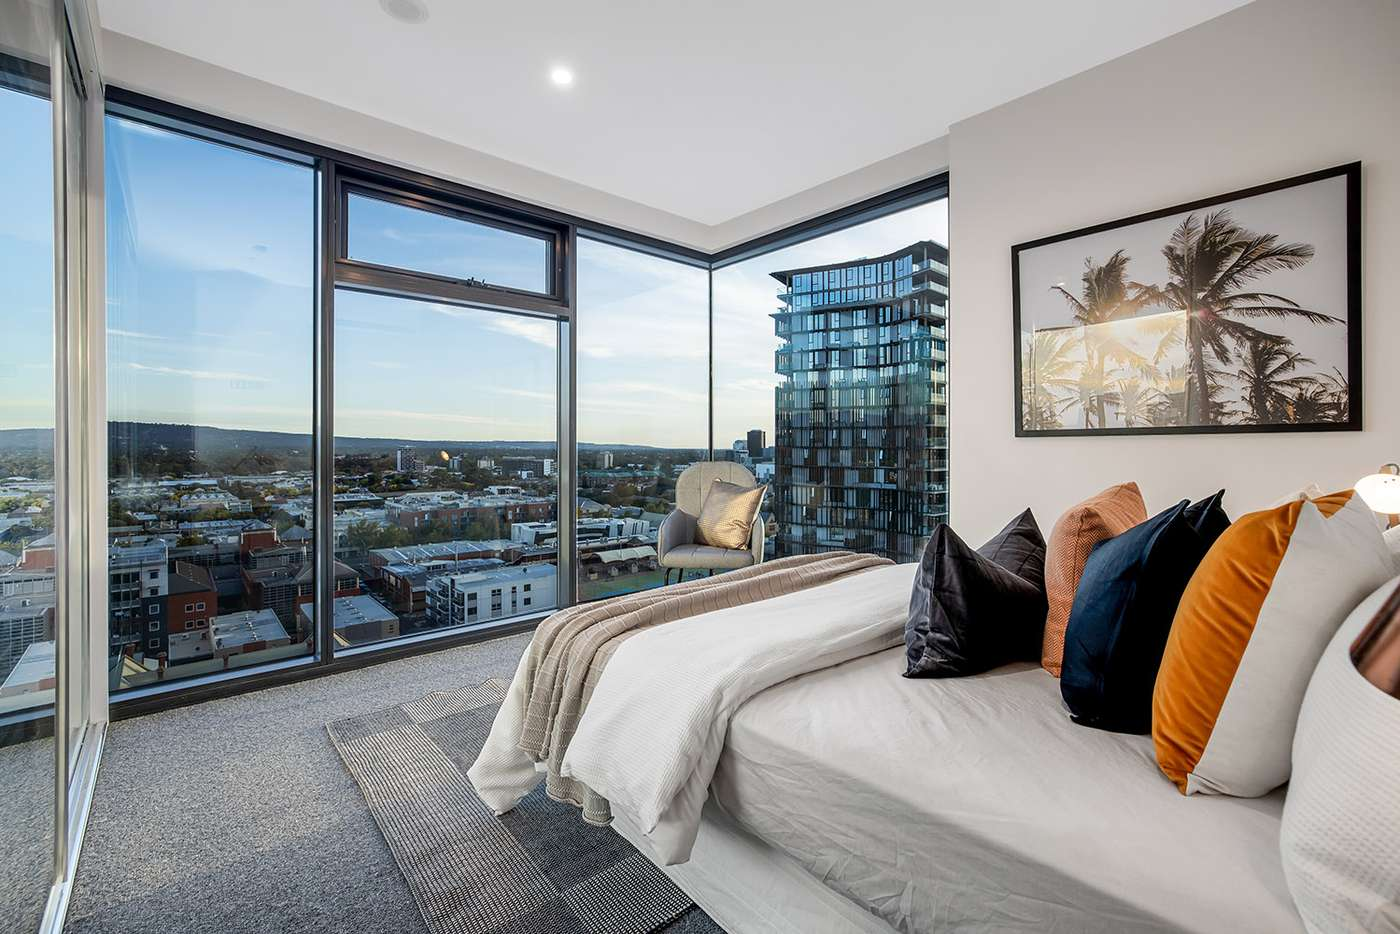 Main view of Homely apartment listing, 501/297 Pirie Street, Adelaide SA 5000